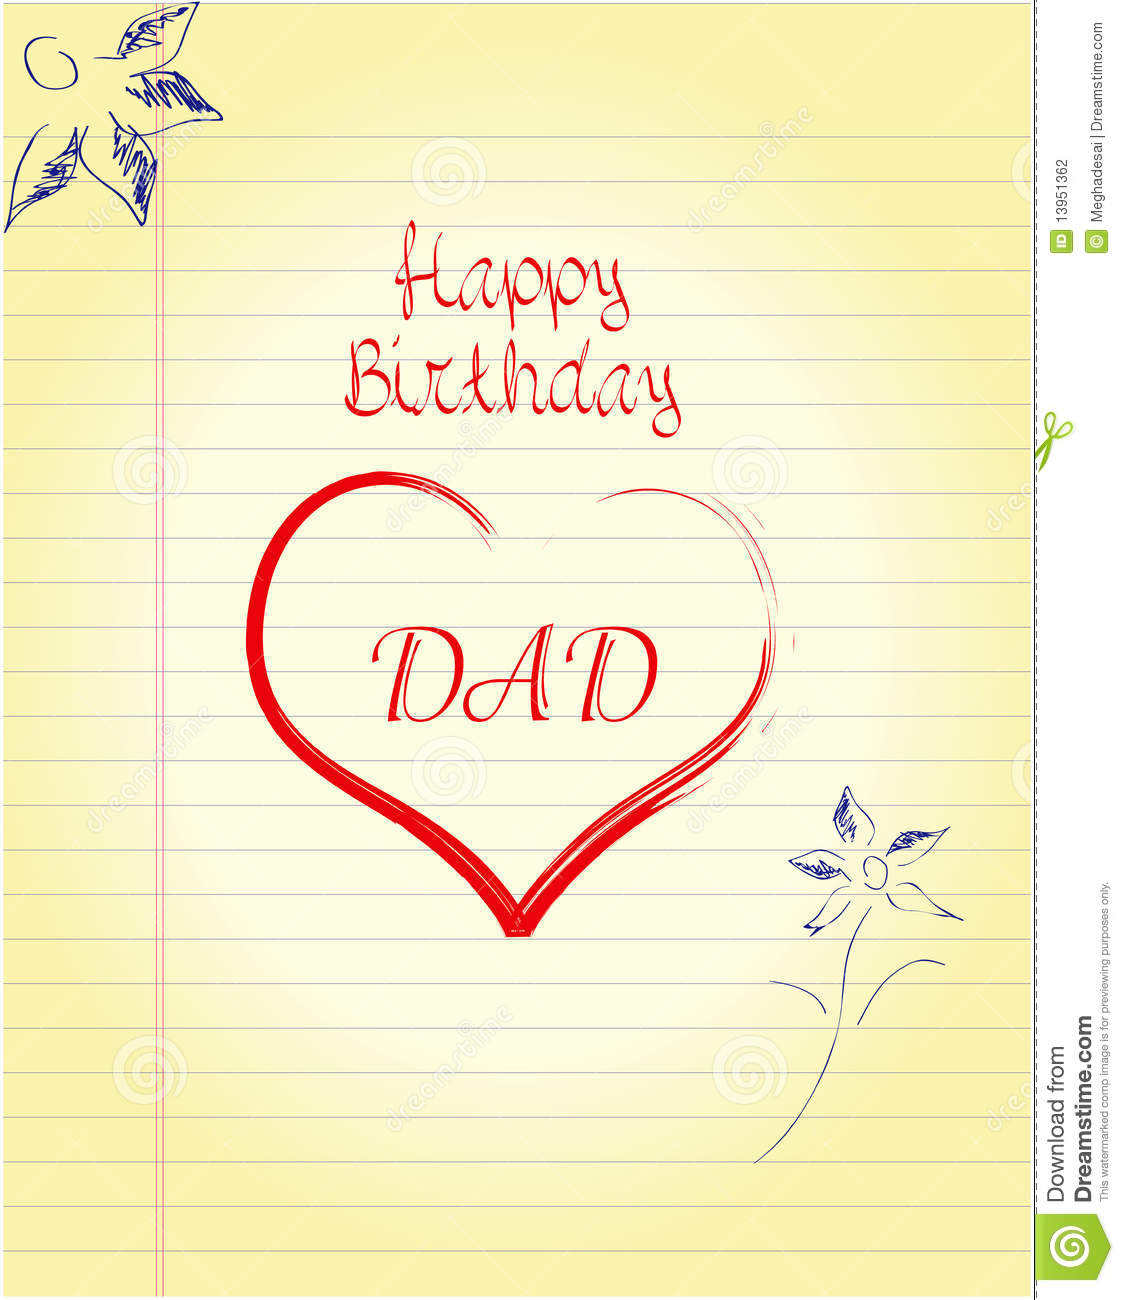 Dad's Birthday Stock Photography - Image: 13951362